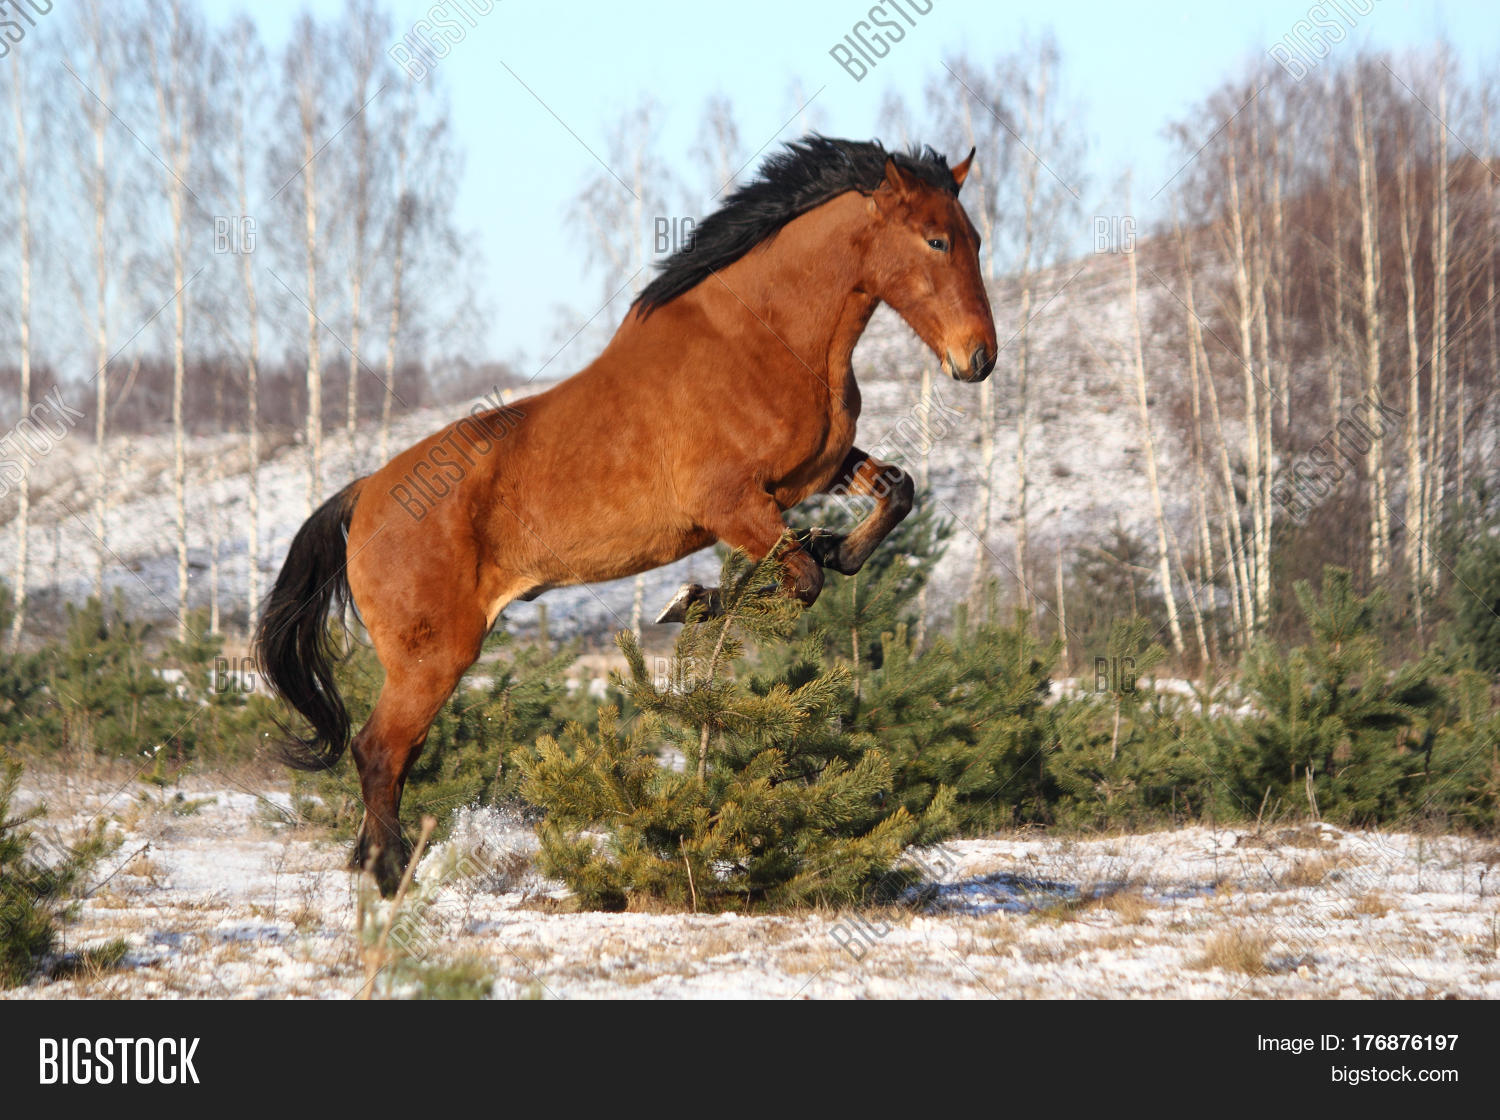 Wild Horse Jumping Image Photo Free Trial Bigstock